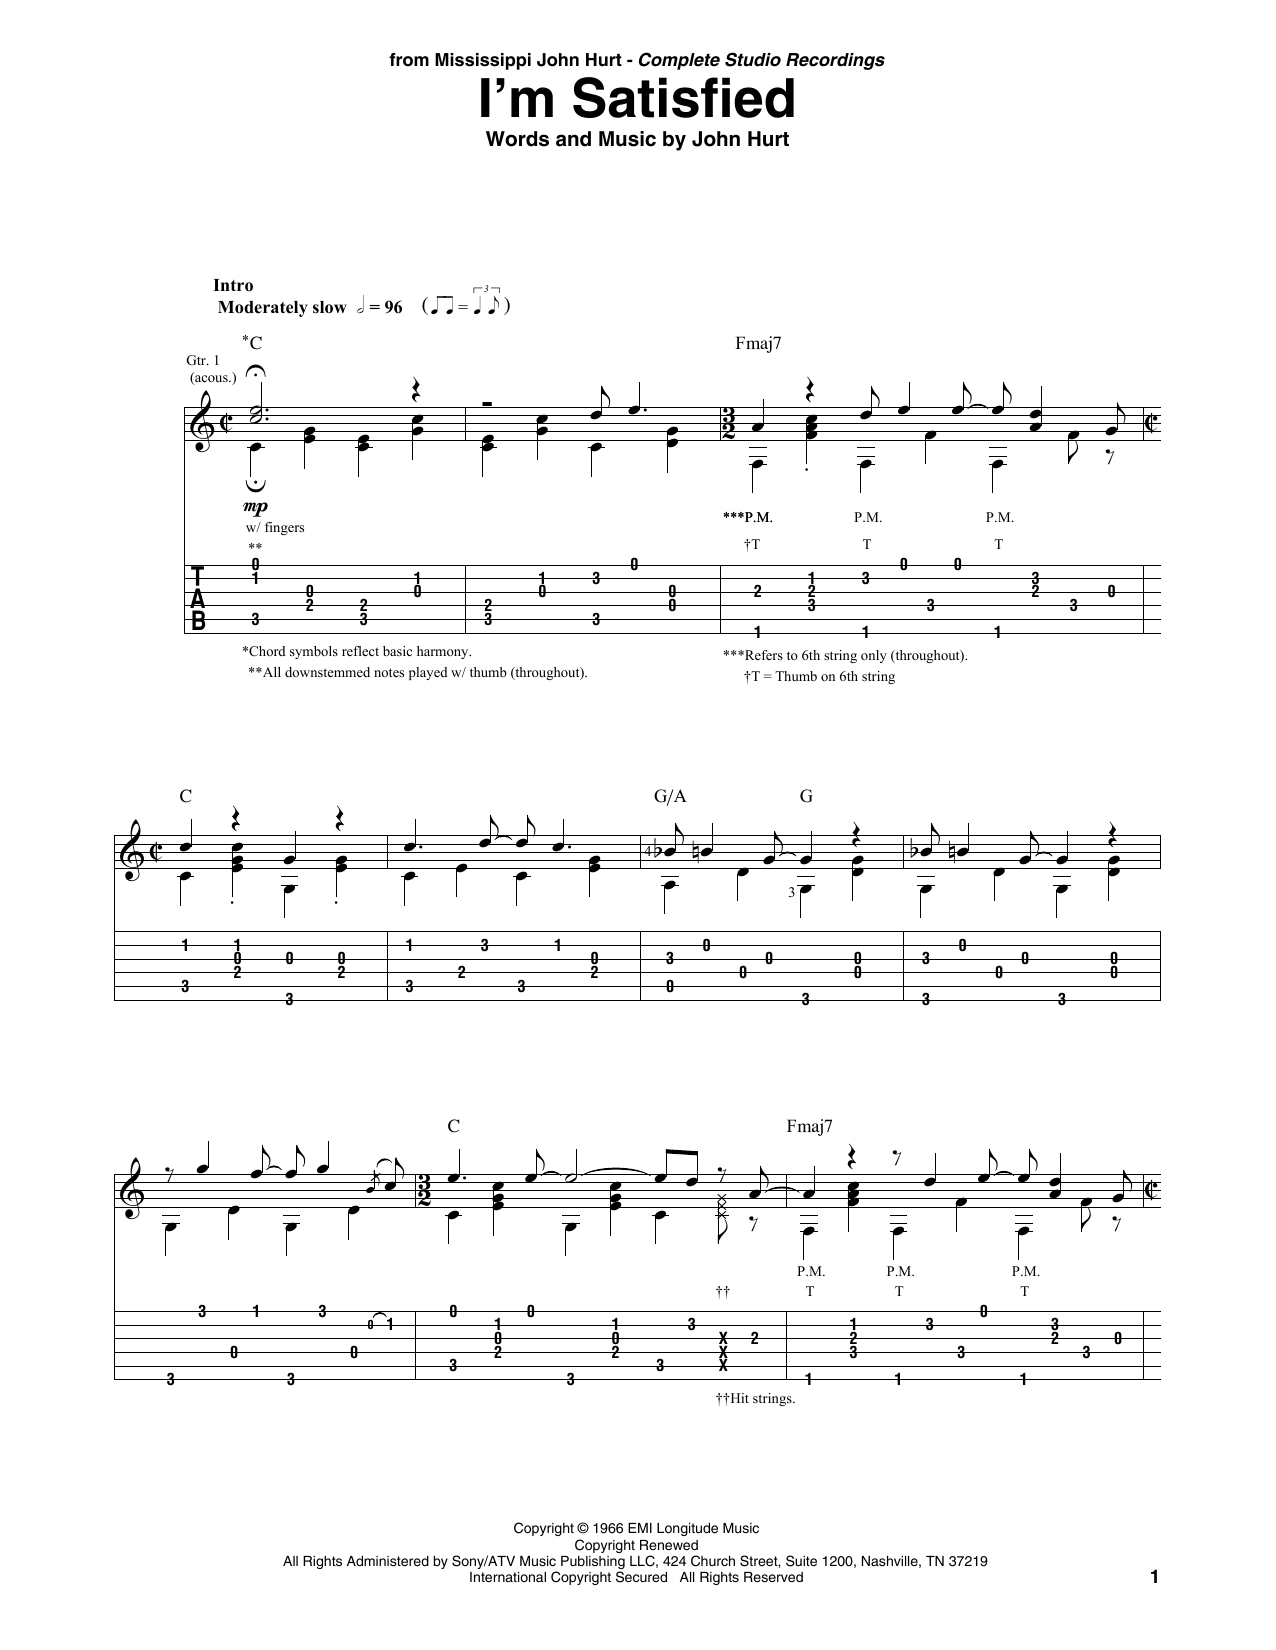 'Mississippi' John Hurt I'm Satisfied sheet music notes and chords. Download Printable PDF.